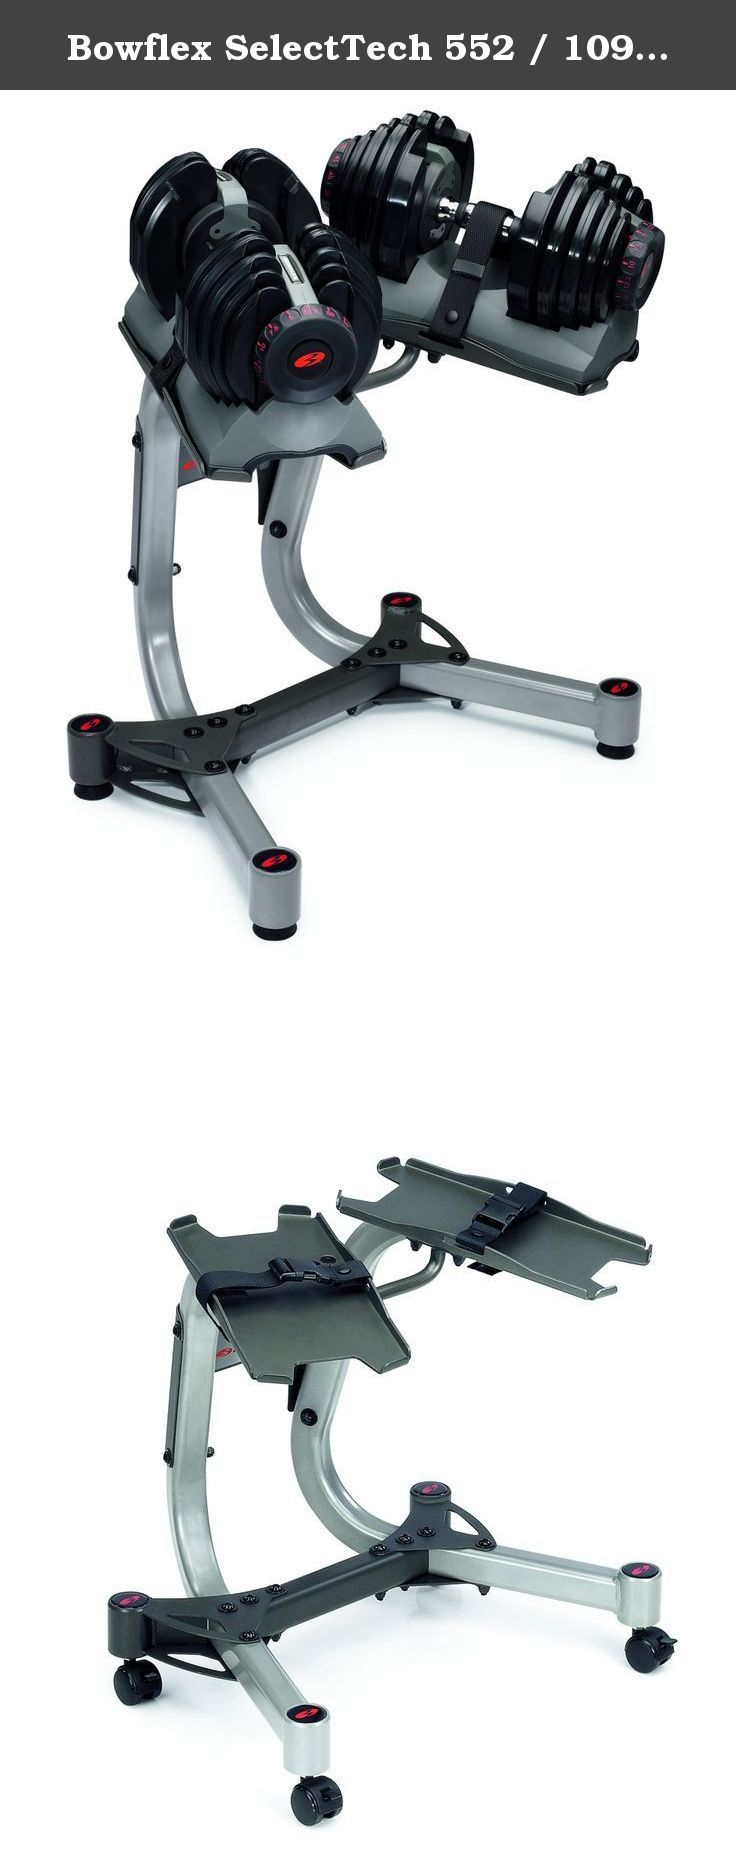 Bowflex Selecttech 552 1090 Dumbbell Stand 000 3682 Features Dumbbell 552 1090 Stand Ergonomic With Images No Equipment Workout Strength Training Equipment Bowflex